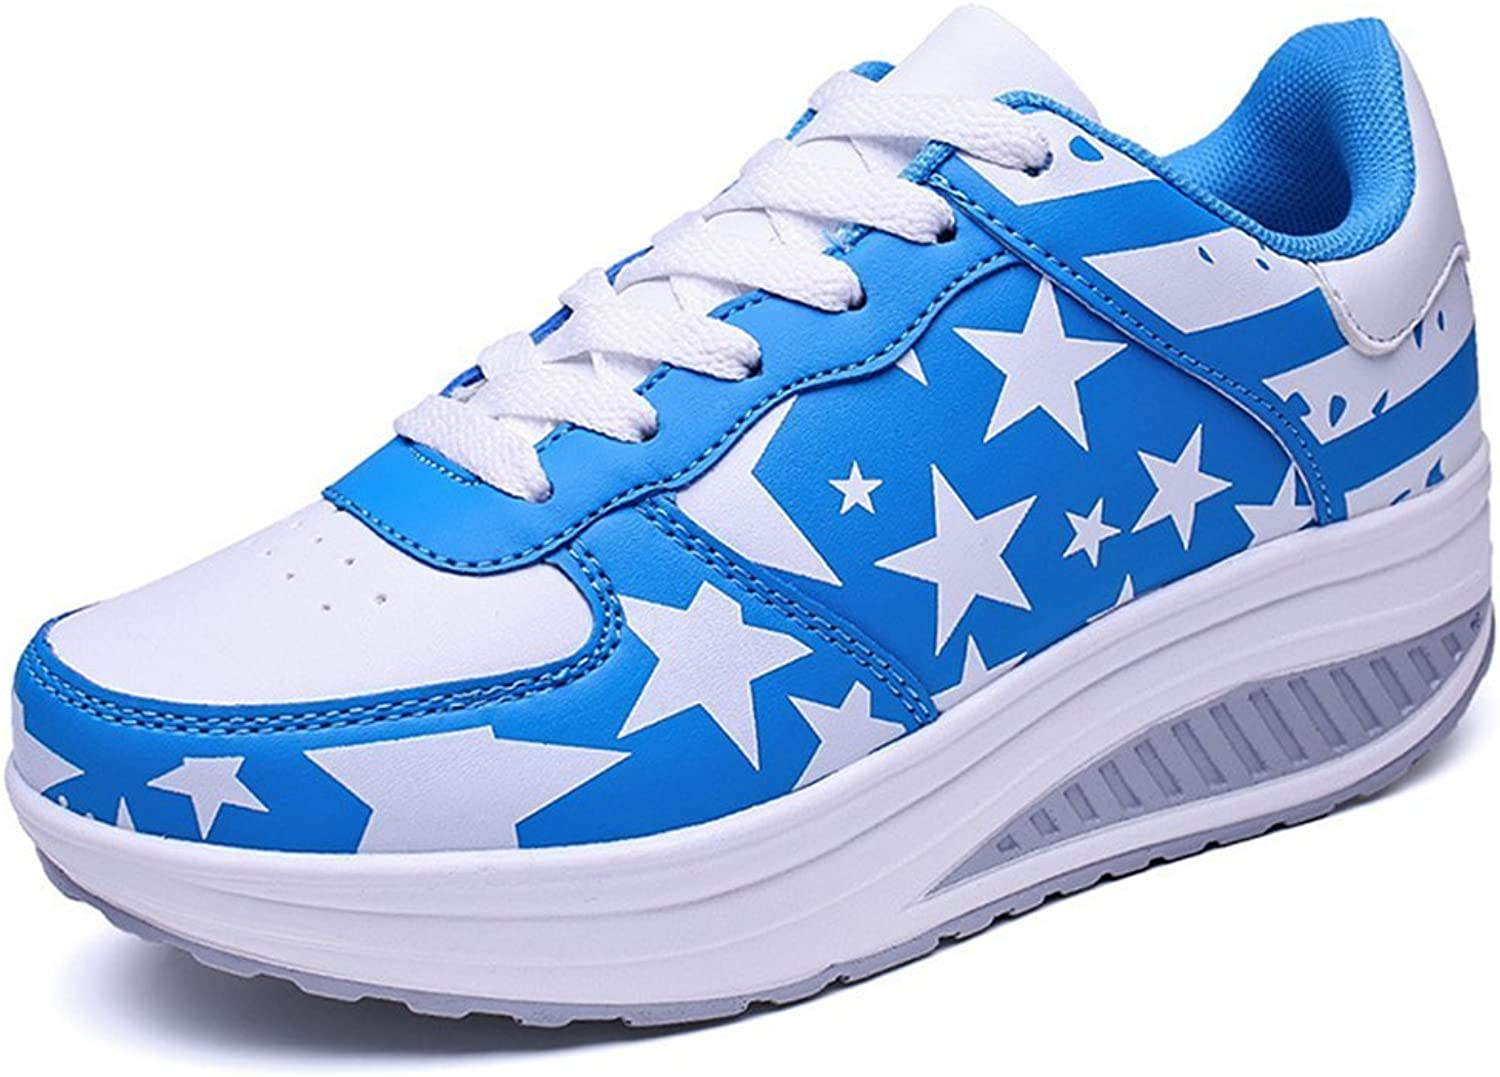 COLOV Women's Athletic Exercise Walking Outdoor shoes for Running Wedge Sports Fitness Sneakers